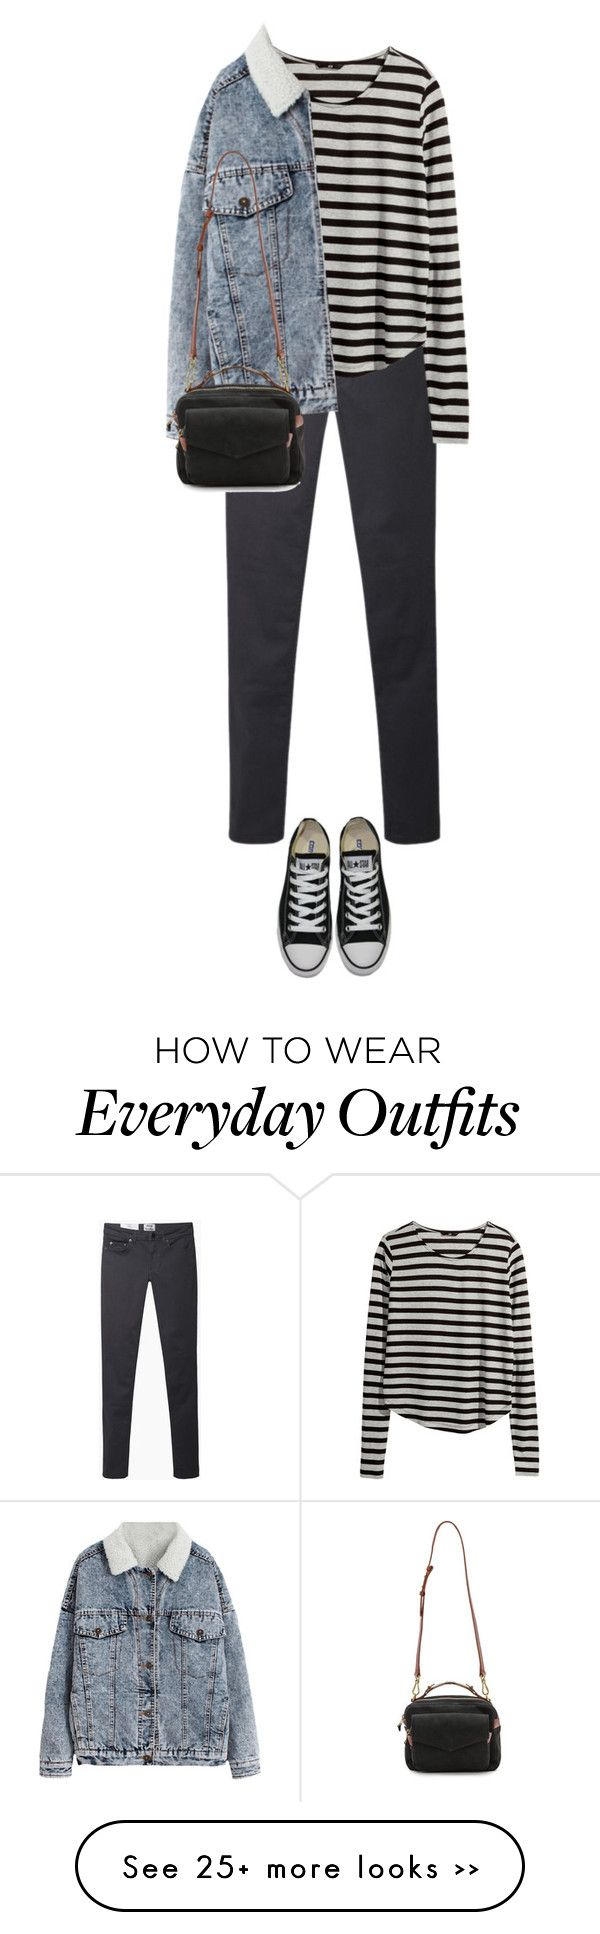 """""""Everyday Outfit"""" by dancingwithyou on Polyvore"""